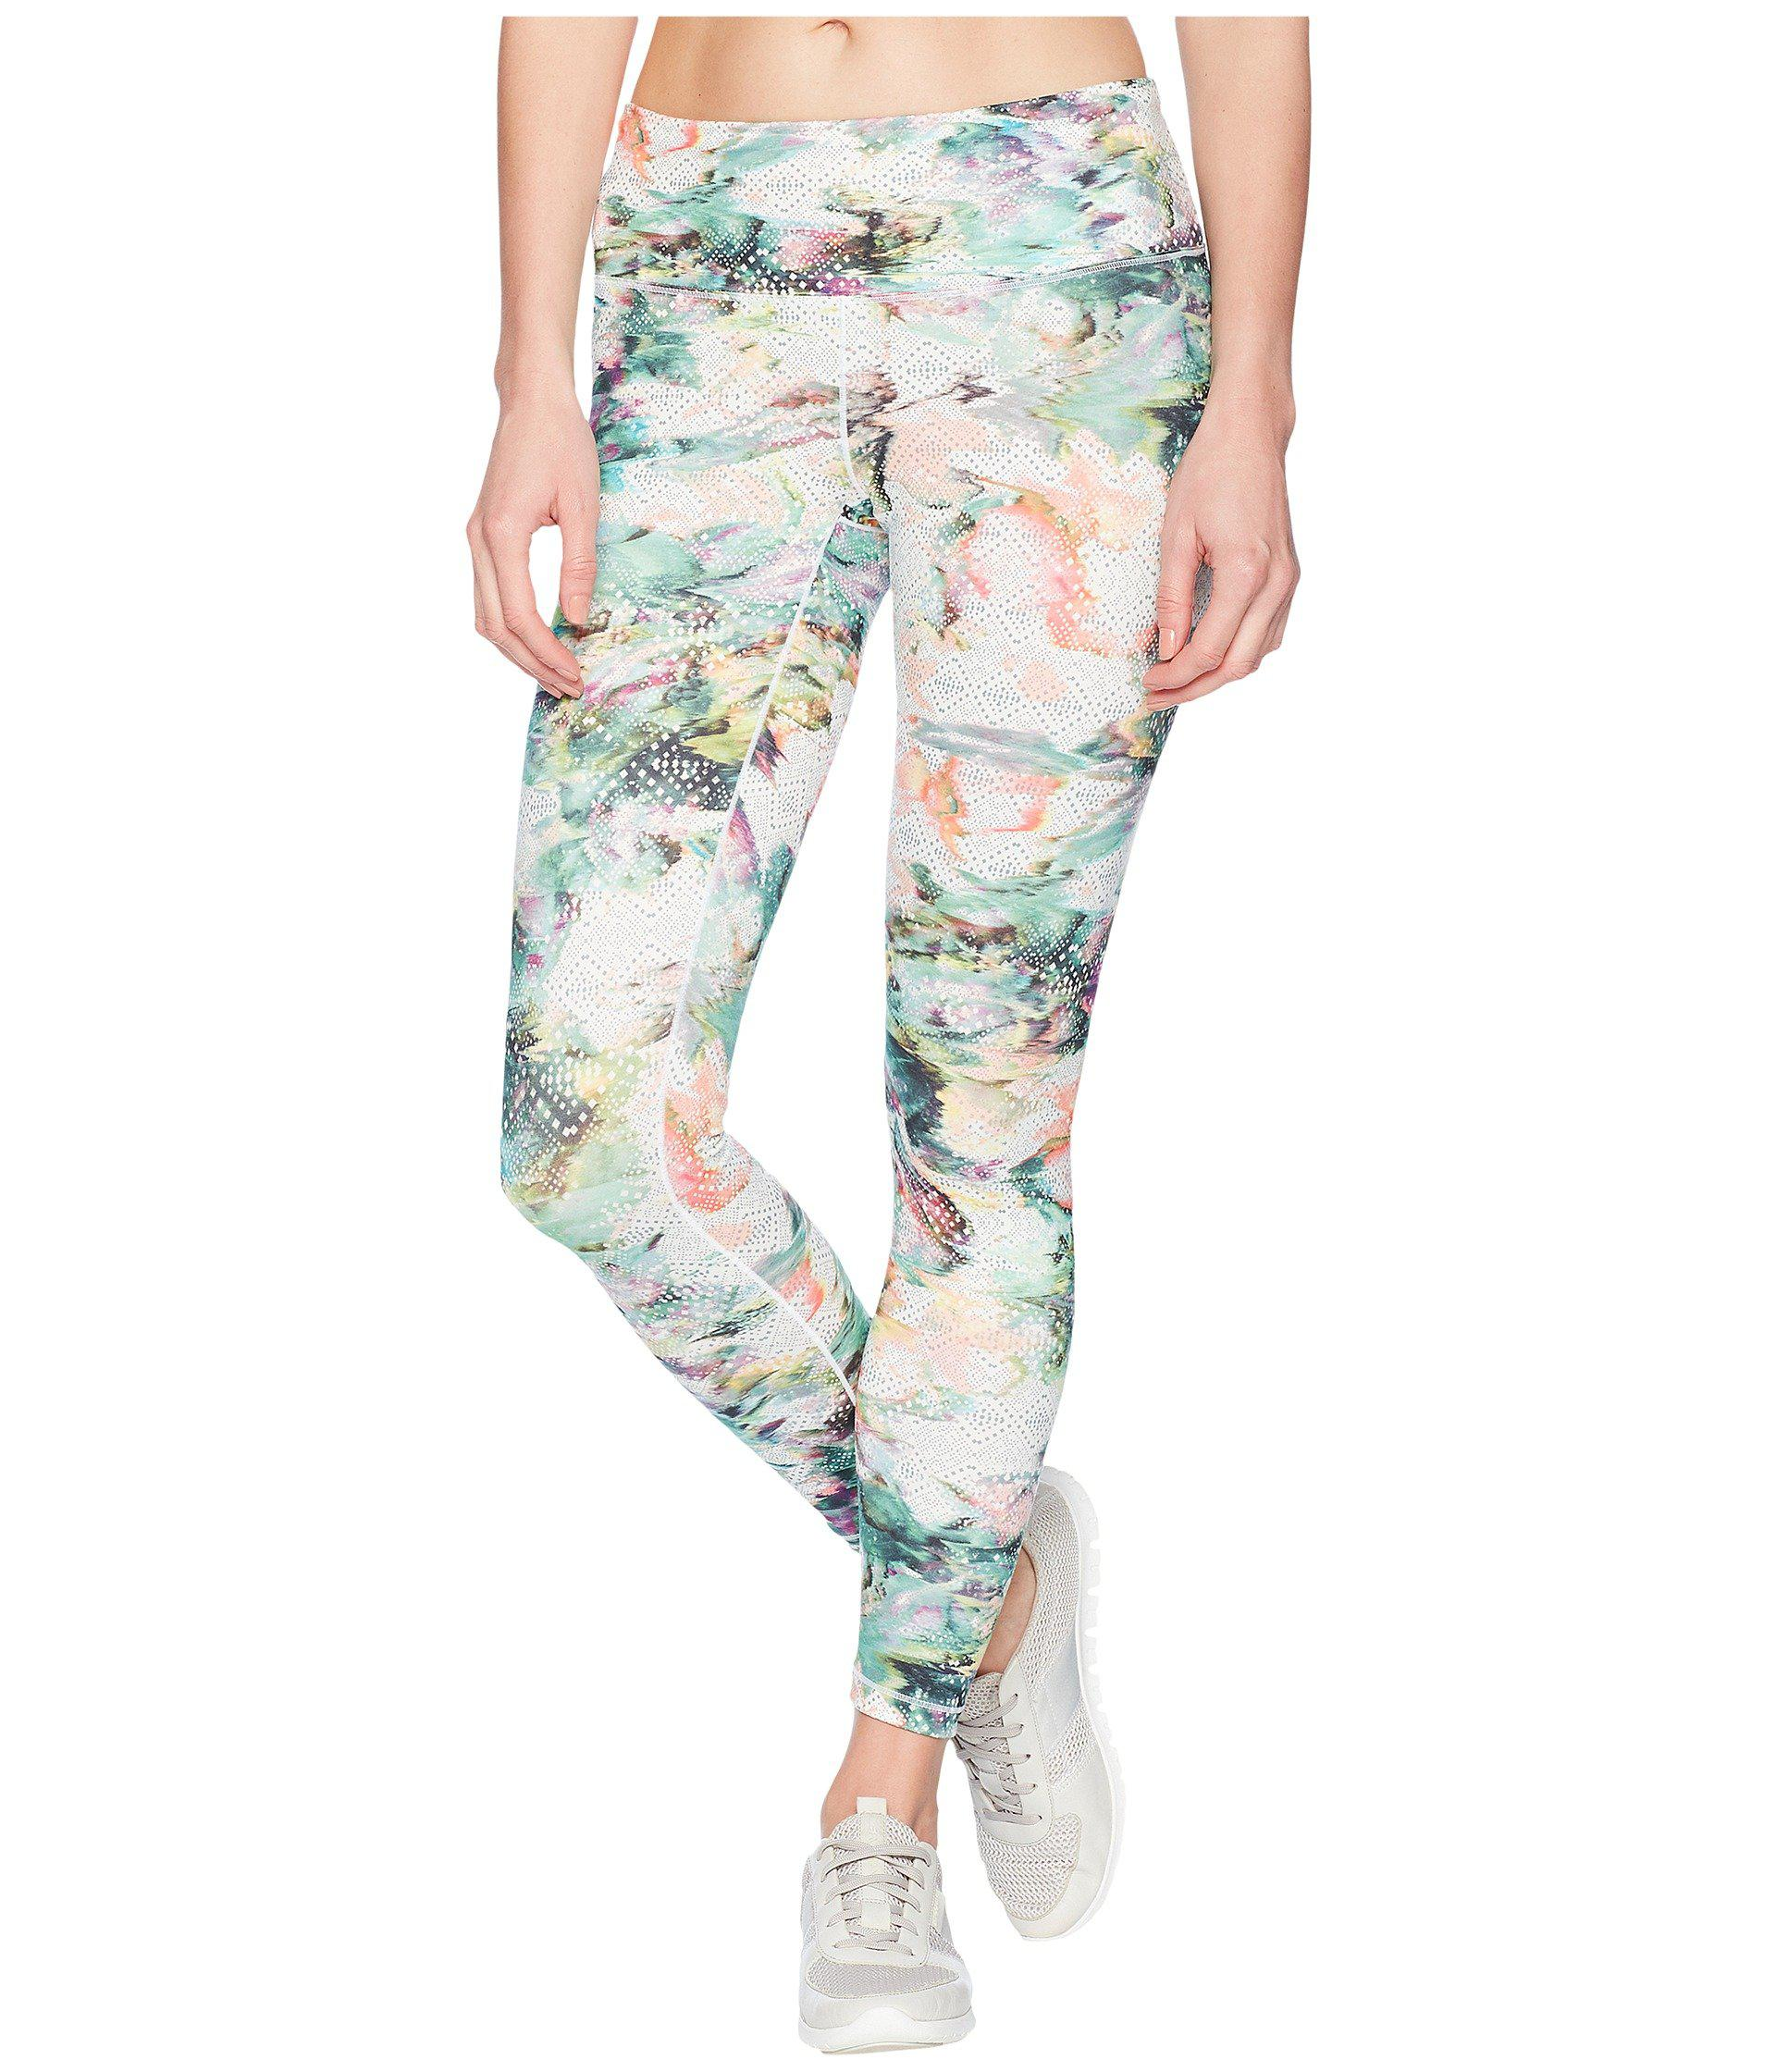 5bbdeb4514e7c Lyst - Prana Pillar Printed Leggings - Save 20%